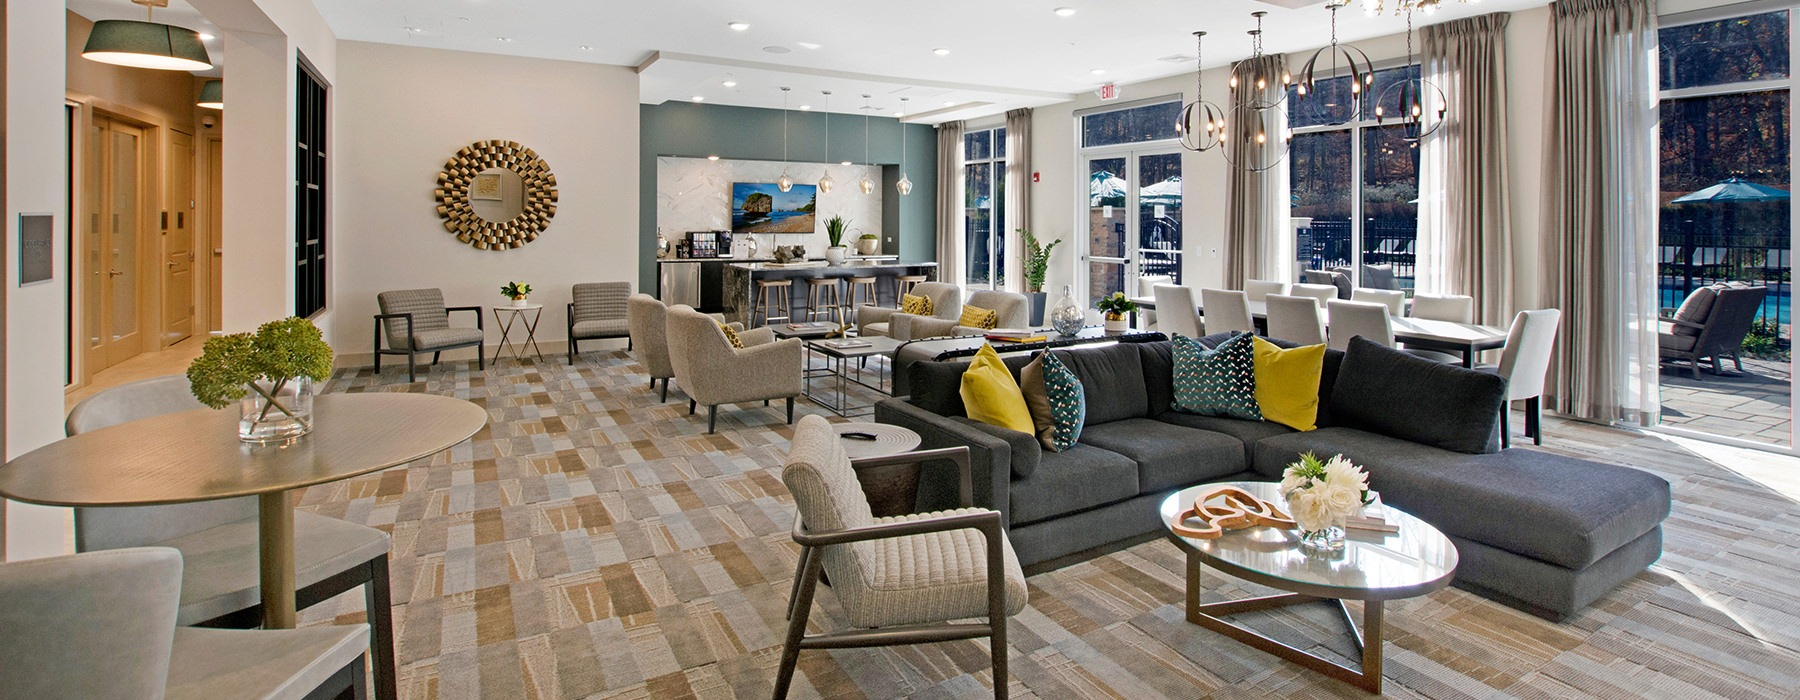 Clubhouse with a kitchen and lounge seating